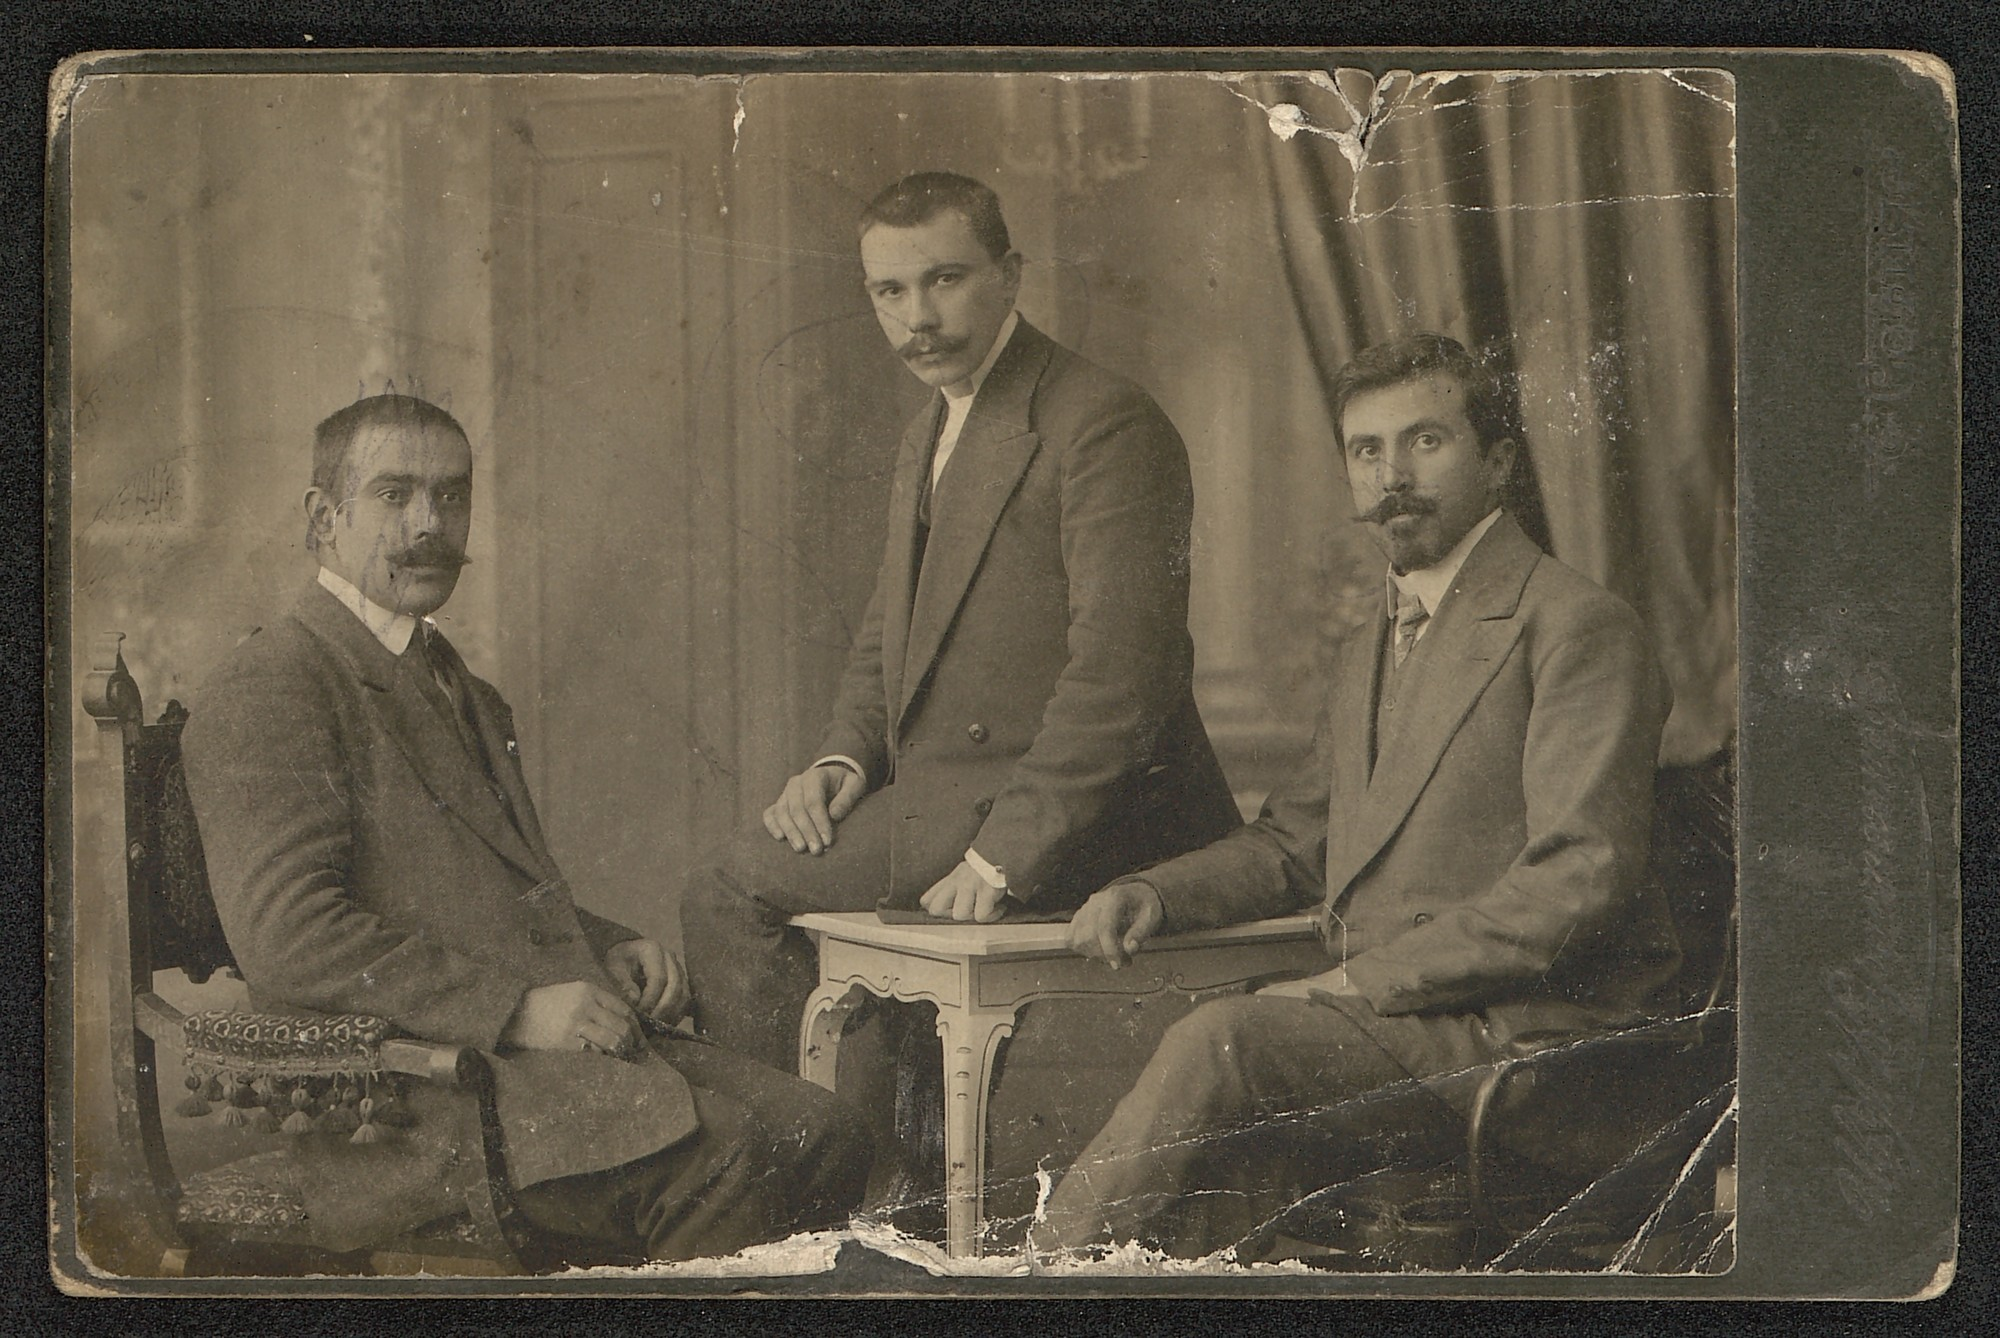 Group portrait of three men, © St. Cyril and St. Methodius National Library